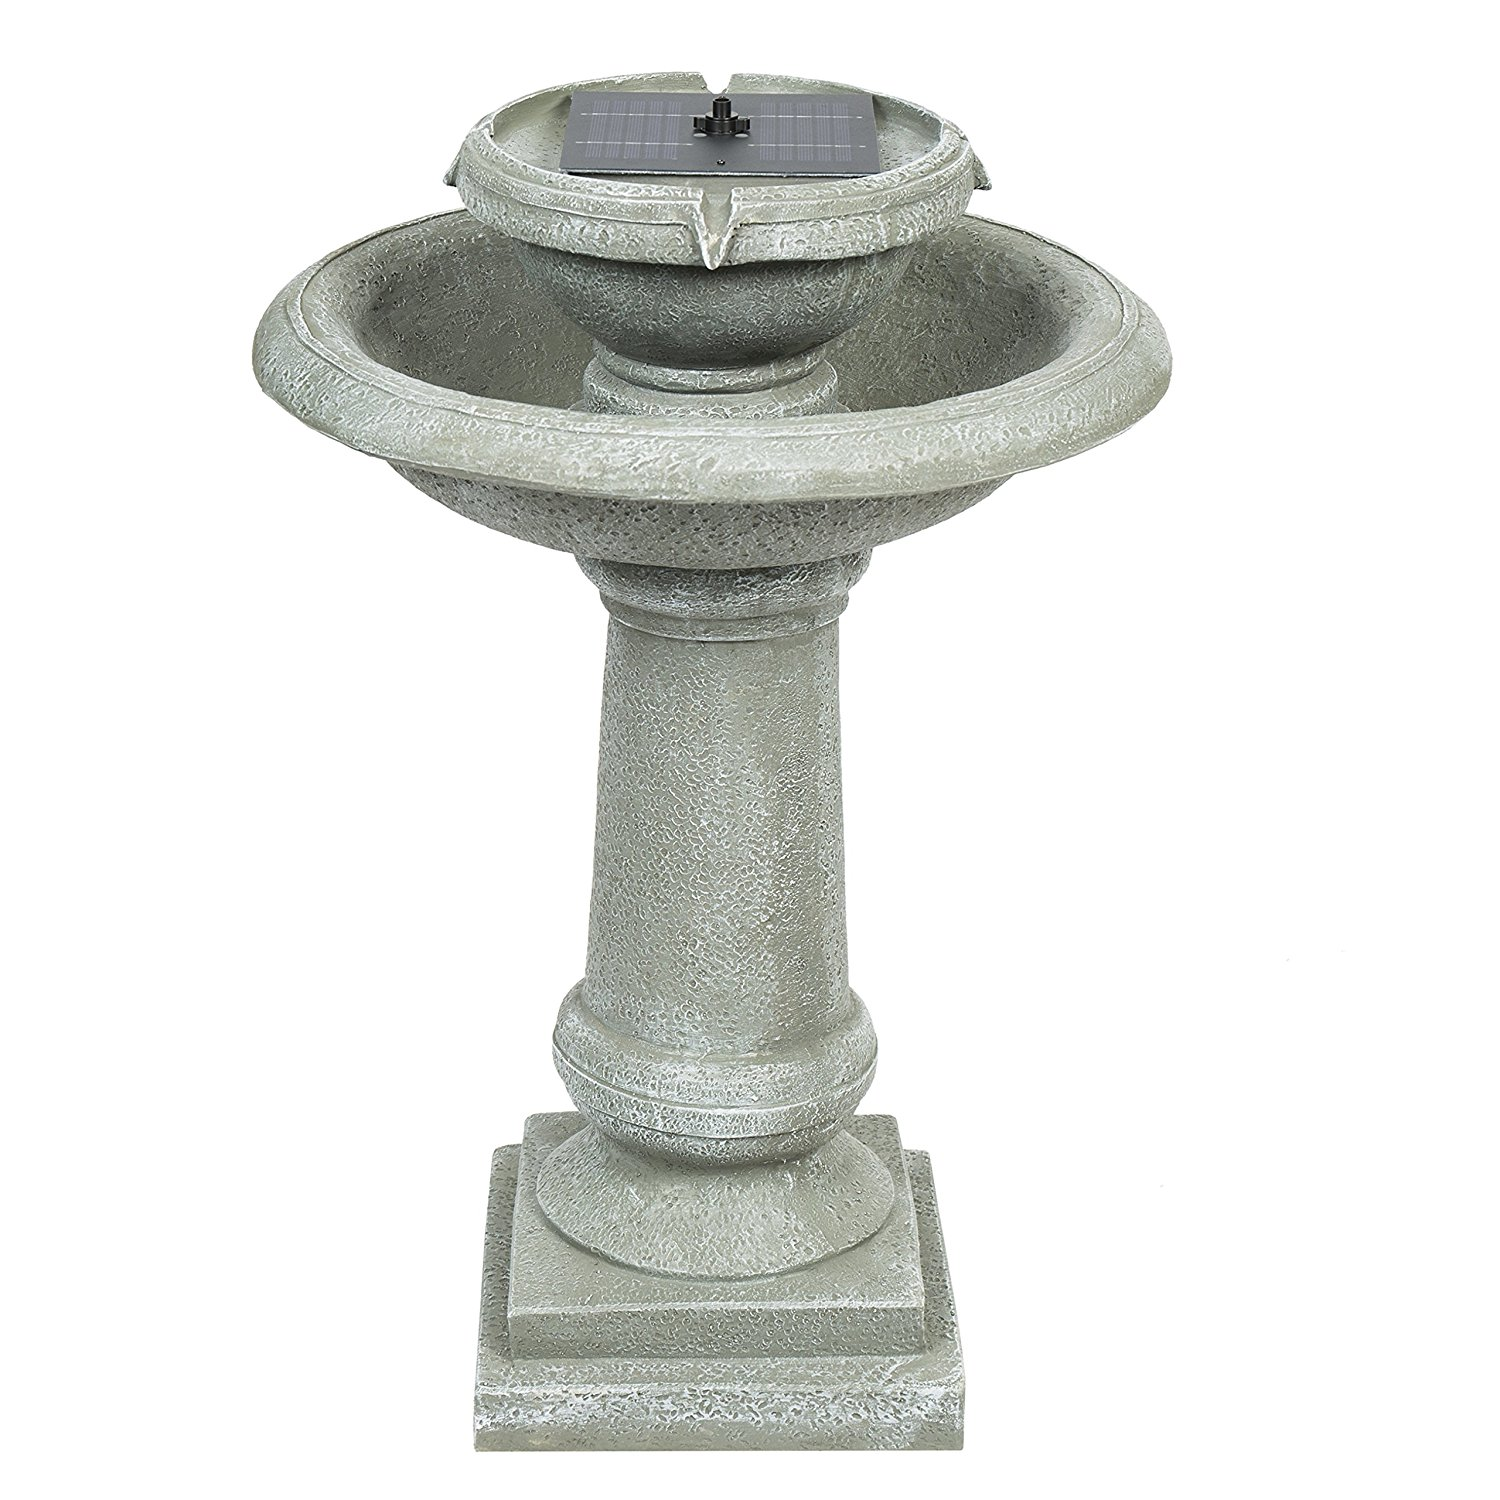 Best Choice Products Solar Power 2 Tier Weathered Stone Bird Bath Fountain Gray